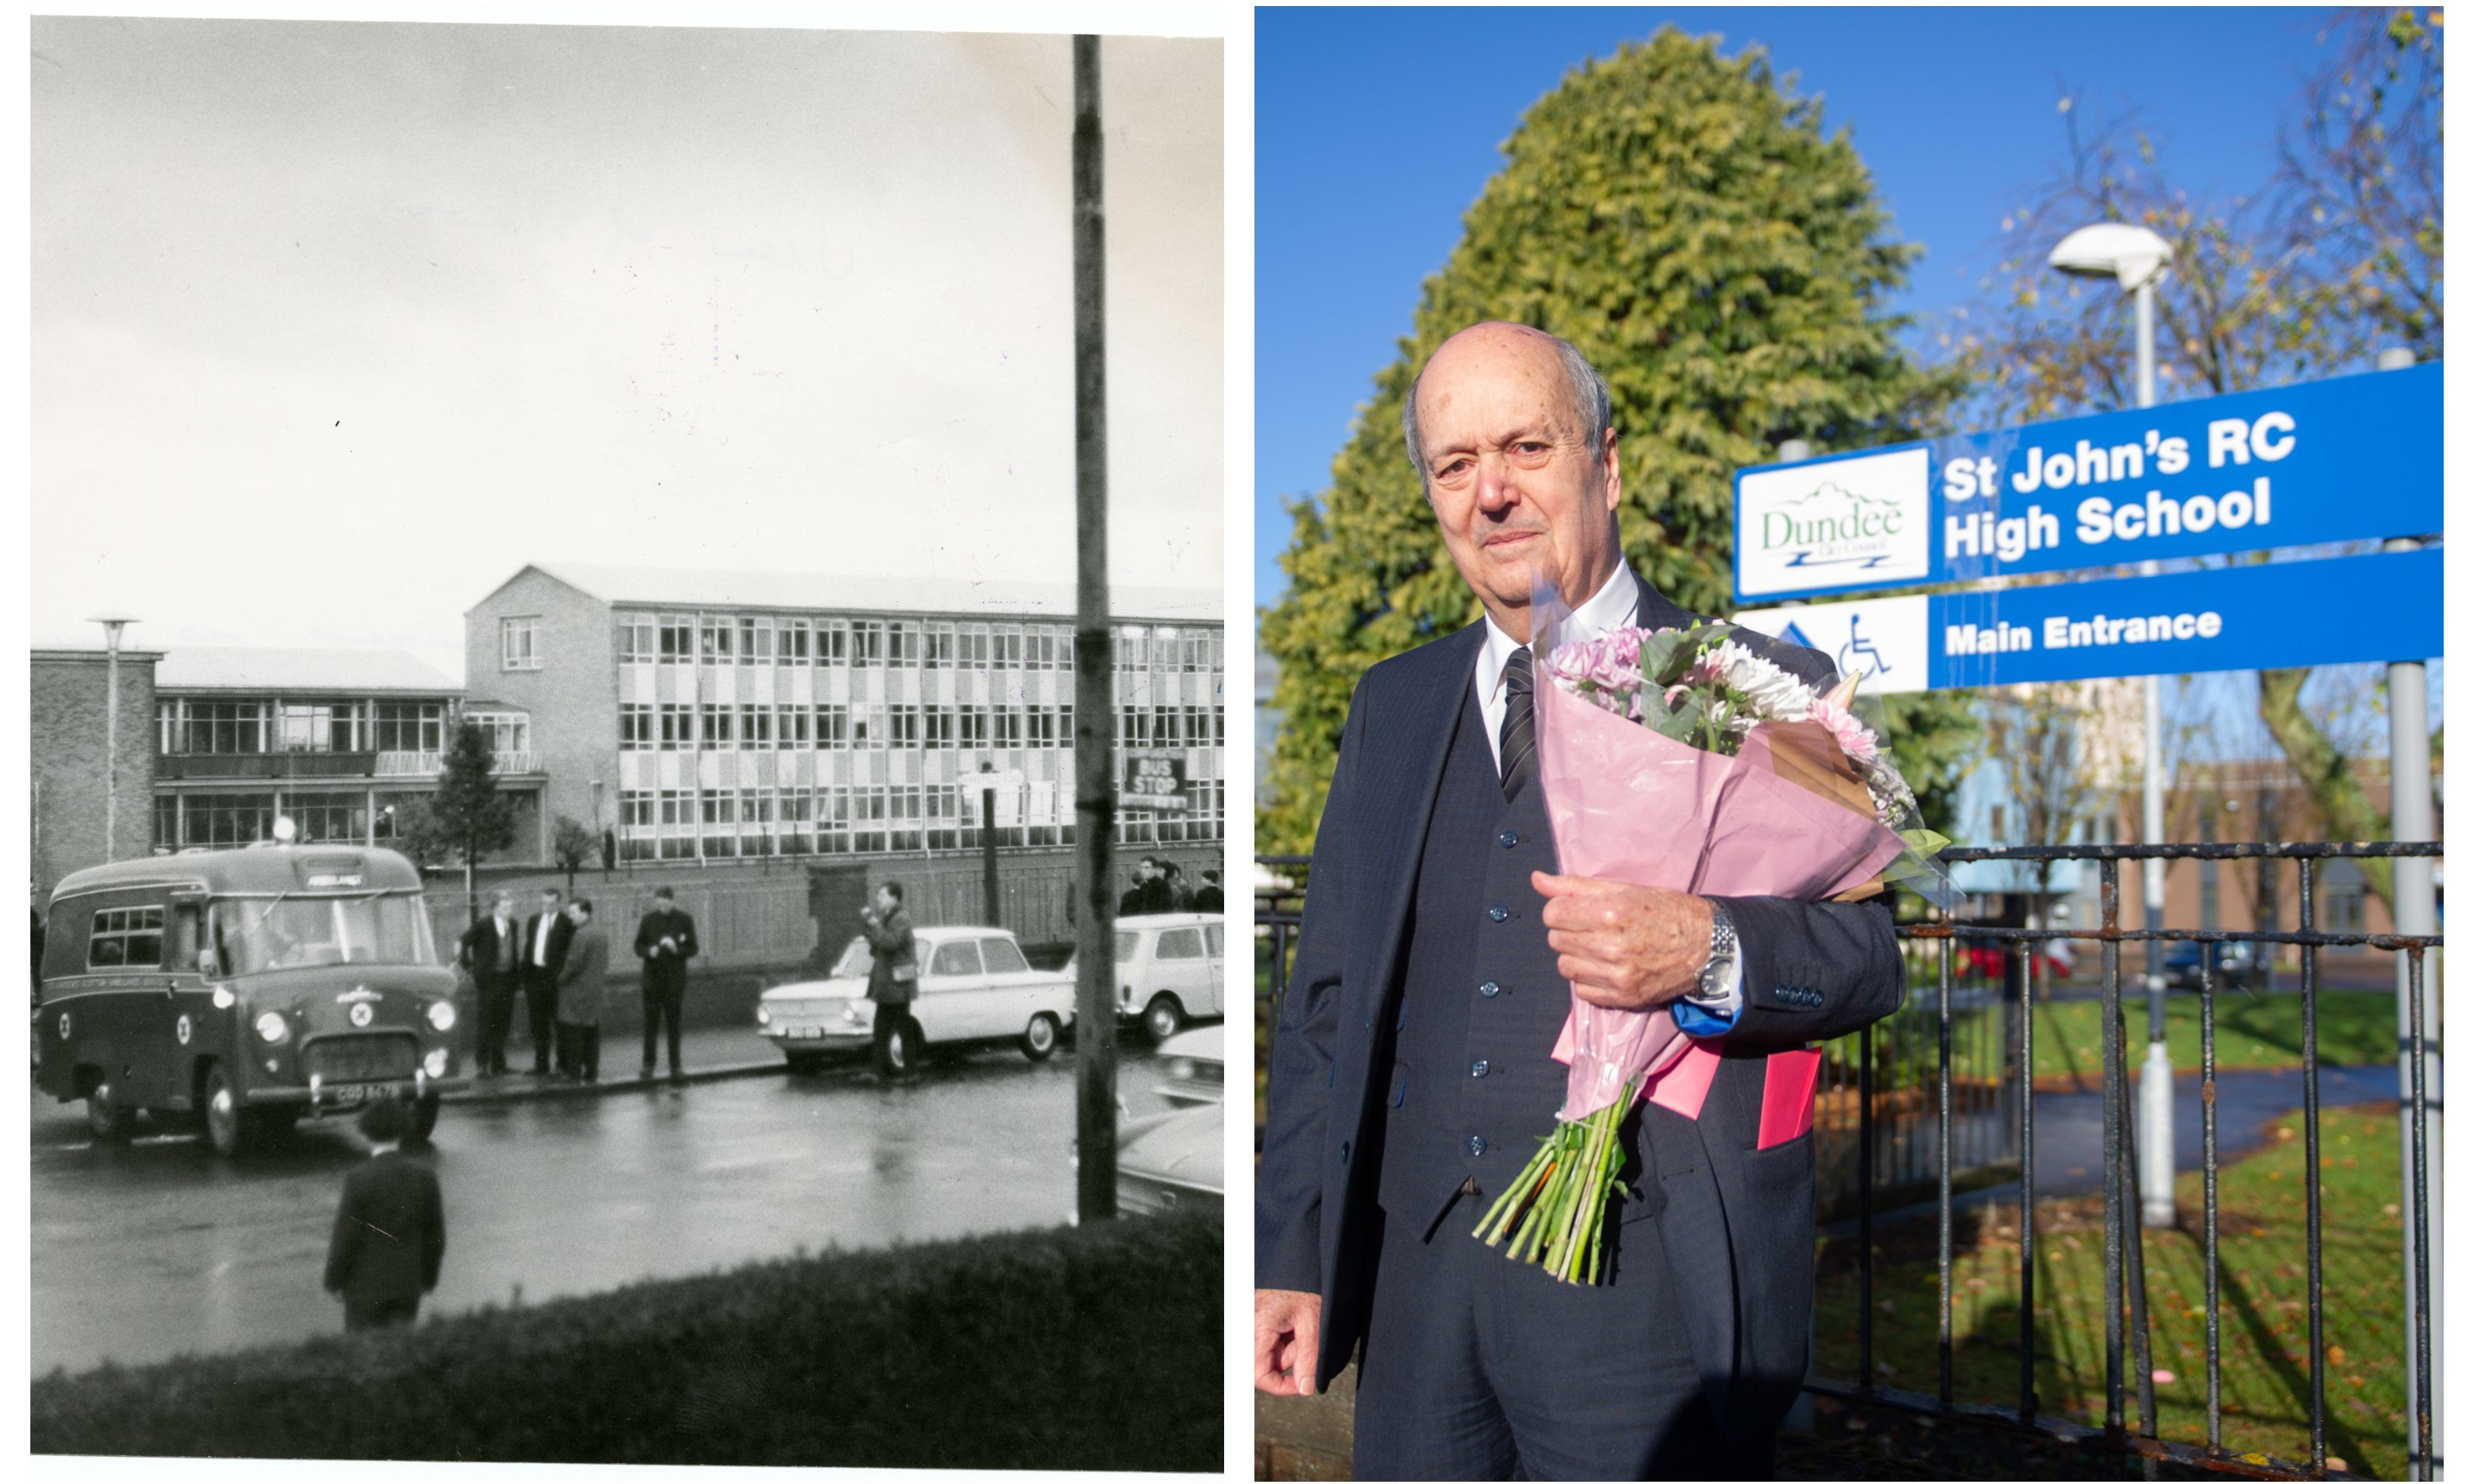 Right: Mike Mulford lays flowers at St John's. Left: The scene at the school 51 years ago.